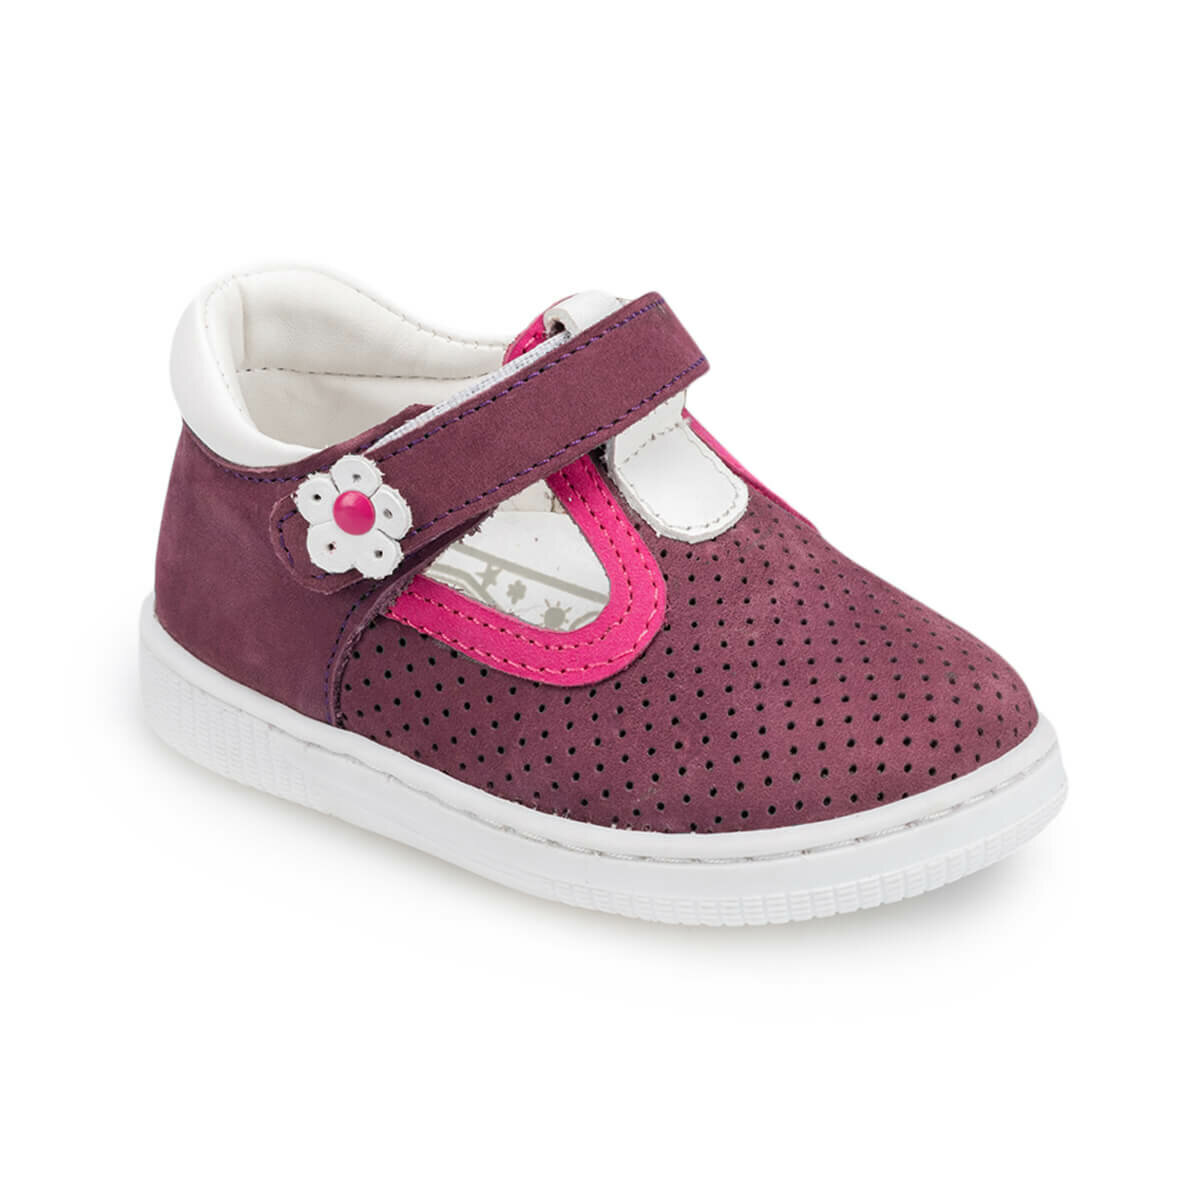 FLO 91.511329.I Purple Female Child Shoes Polaris